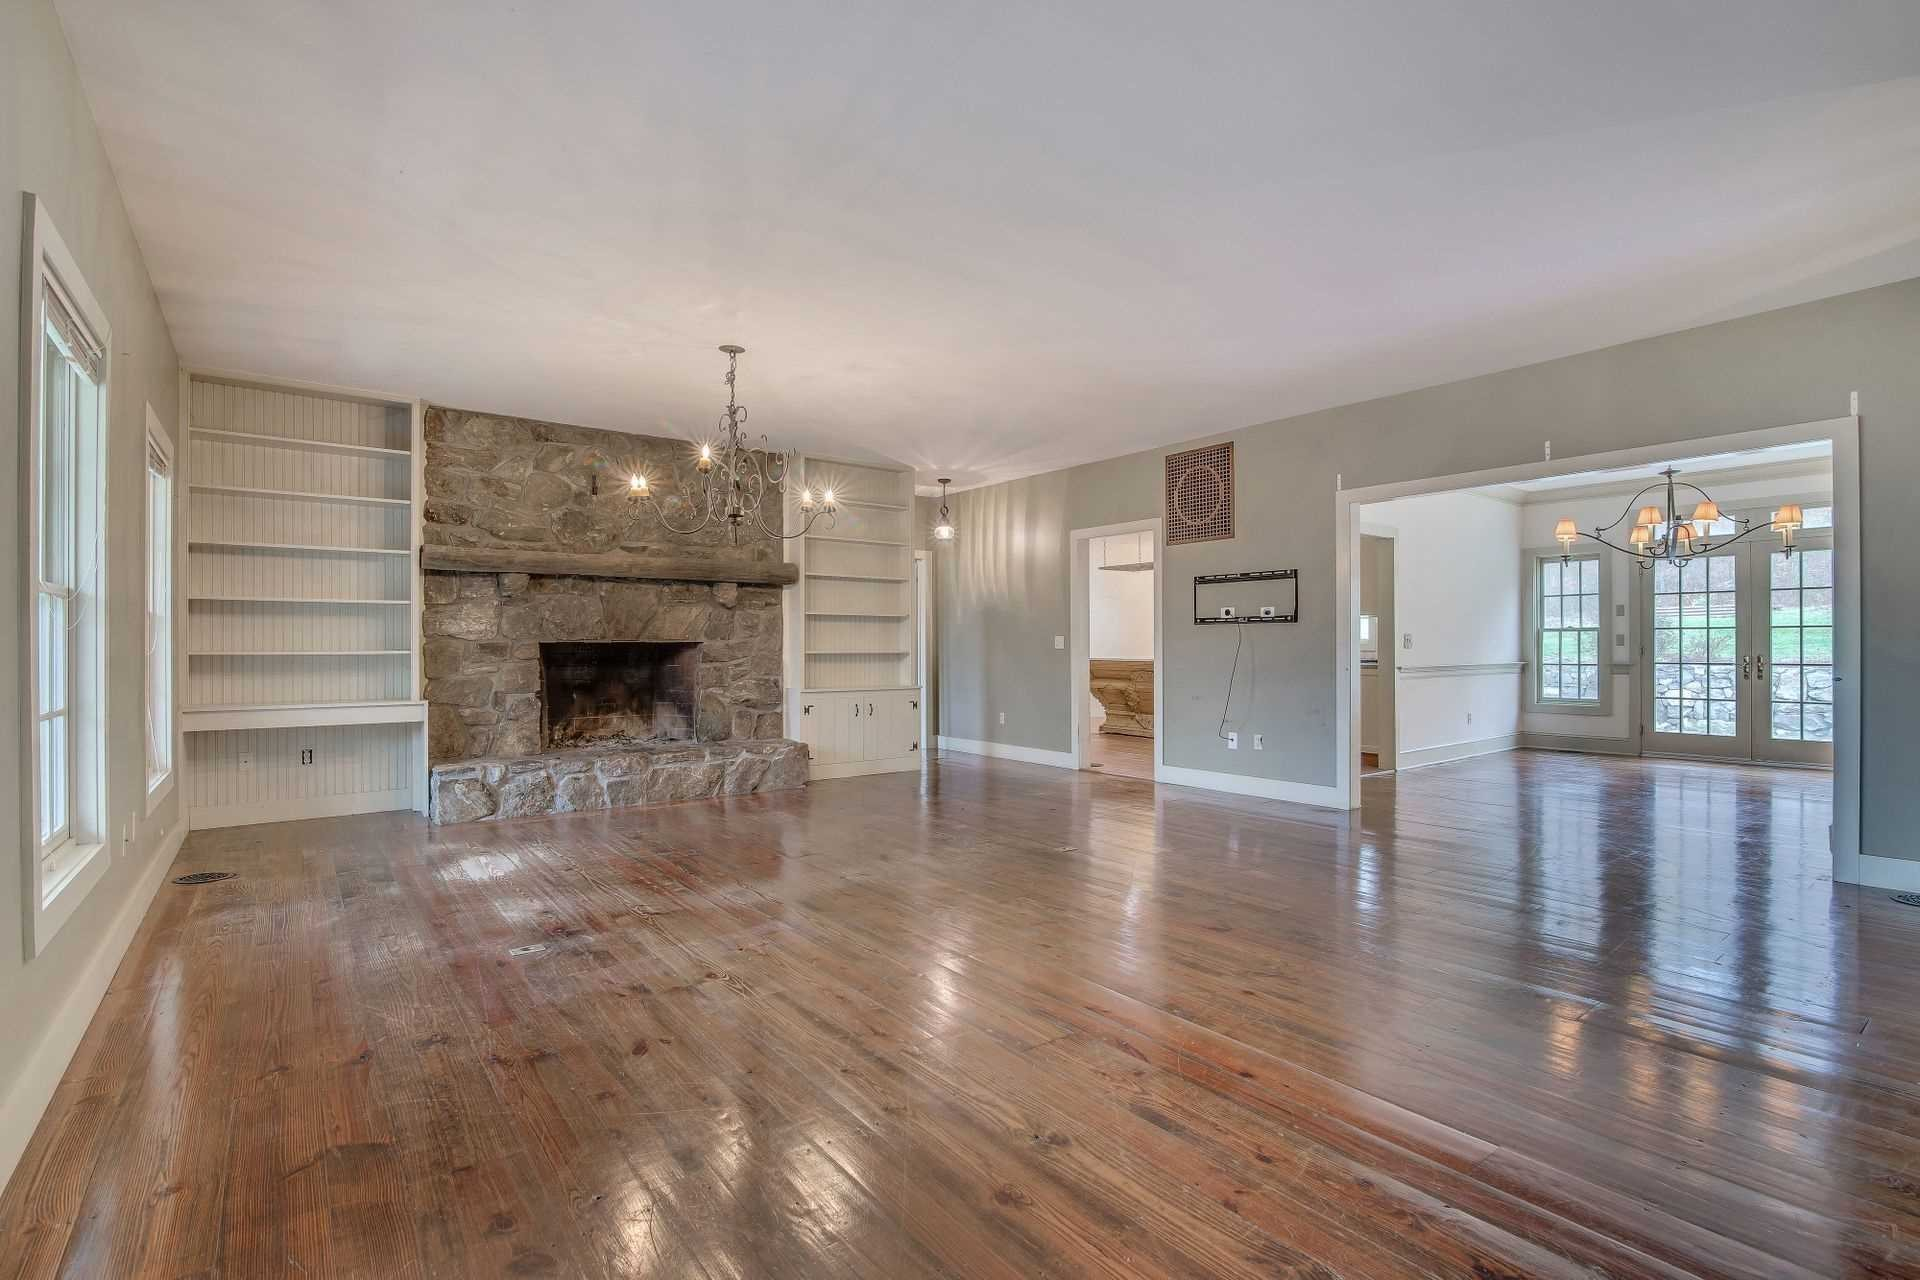 Single Family Home for Sale at 90 DEAN 90 DEAN Kent, New York 10512 United States